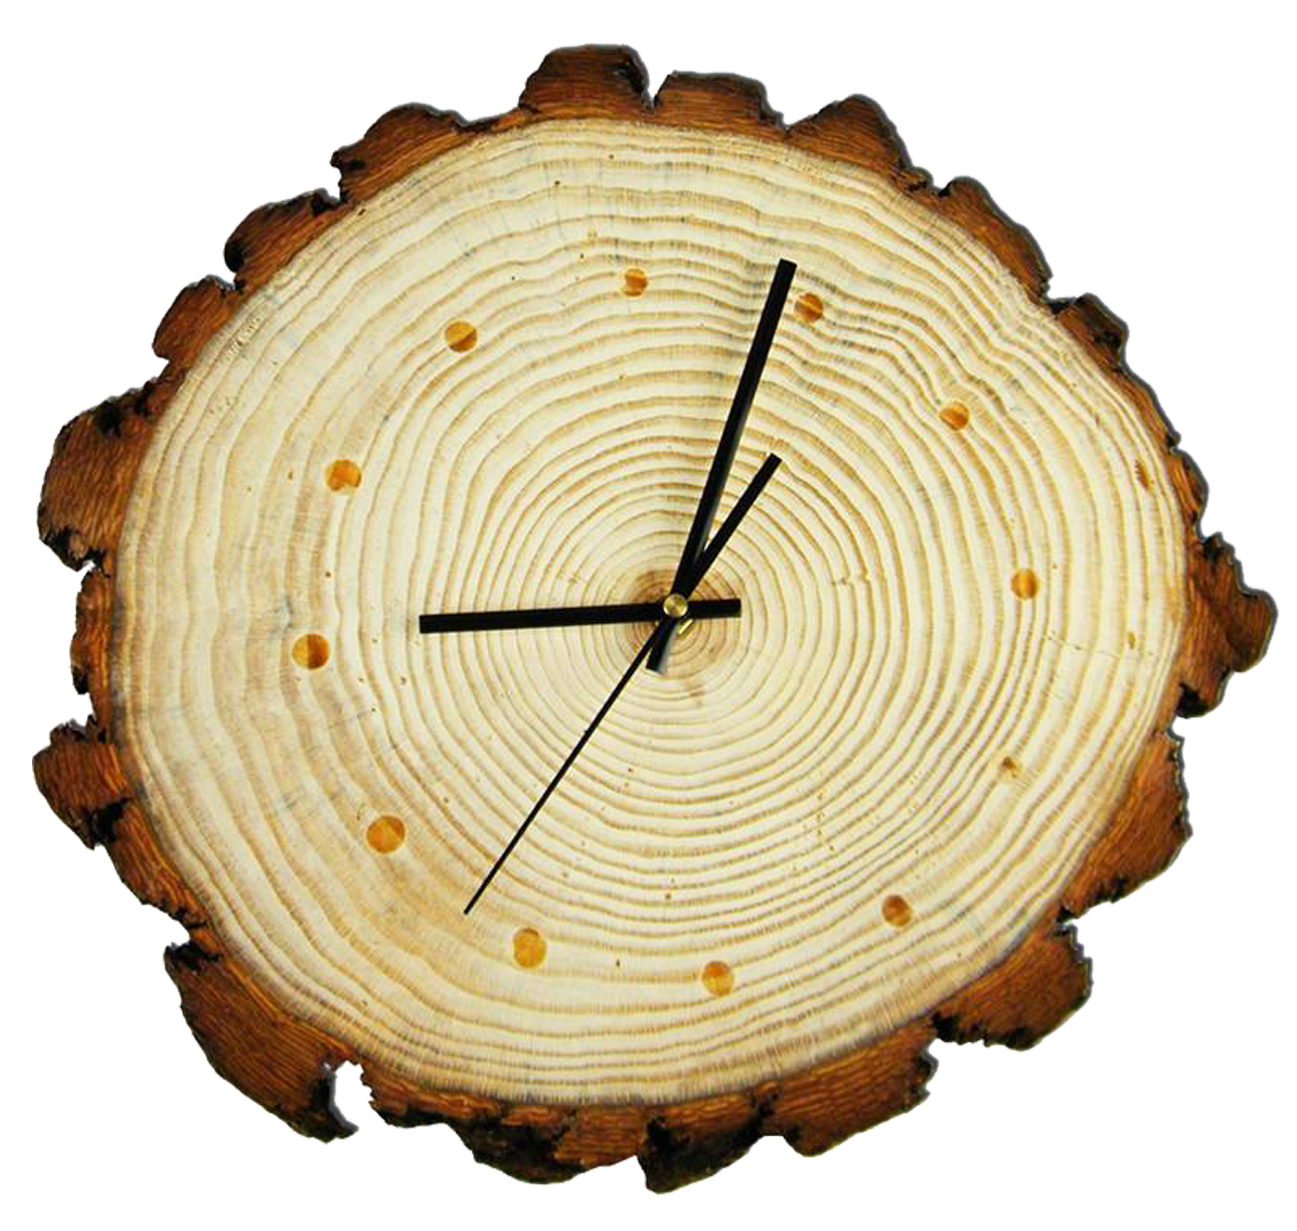 Tree ring png. Aastarxf ngad wood stump